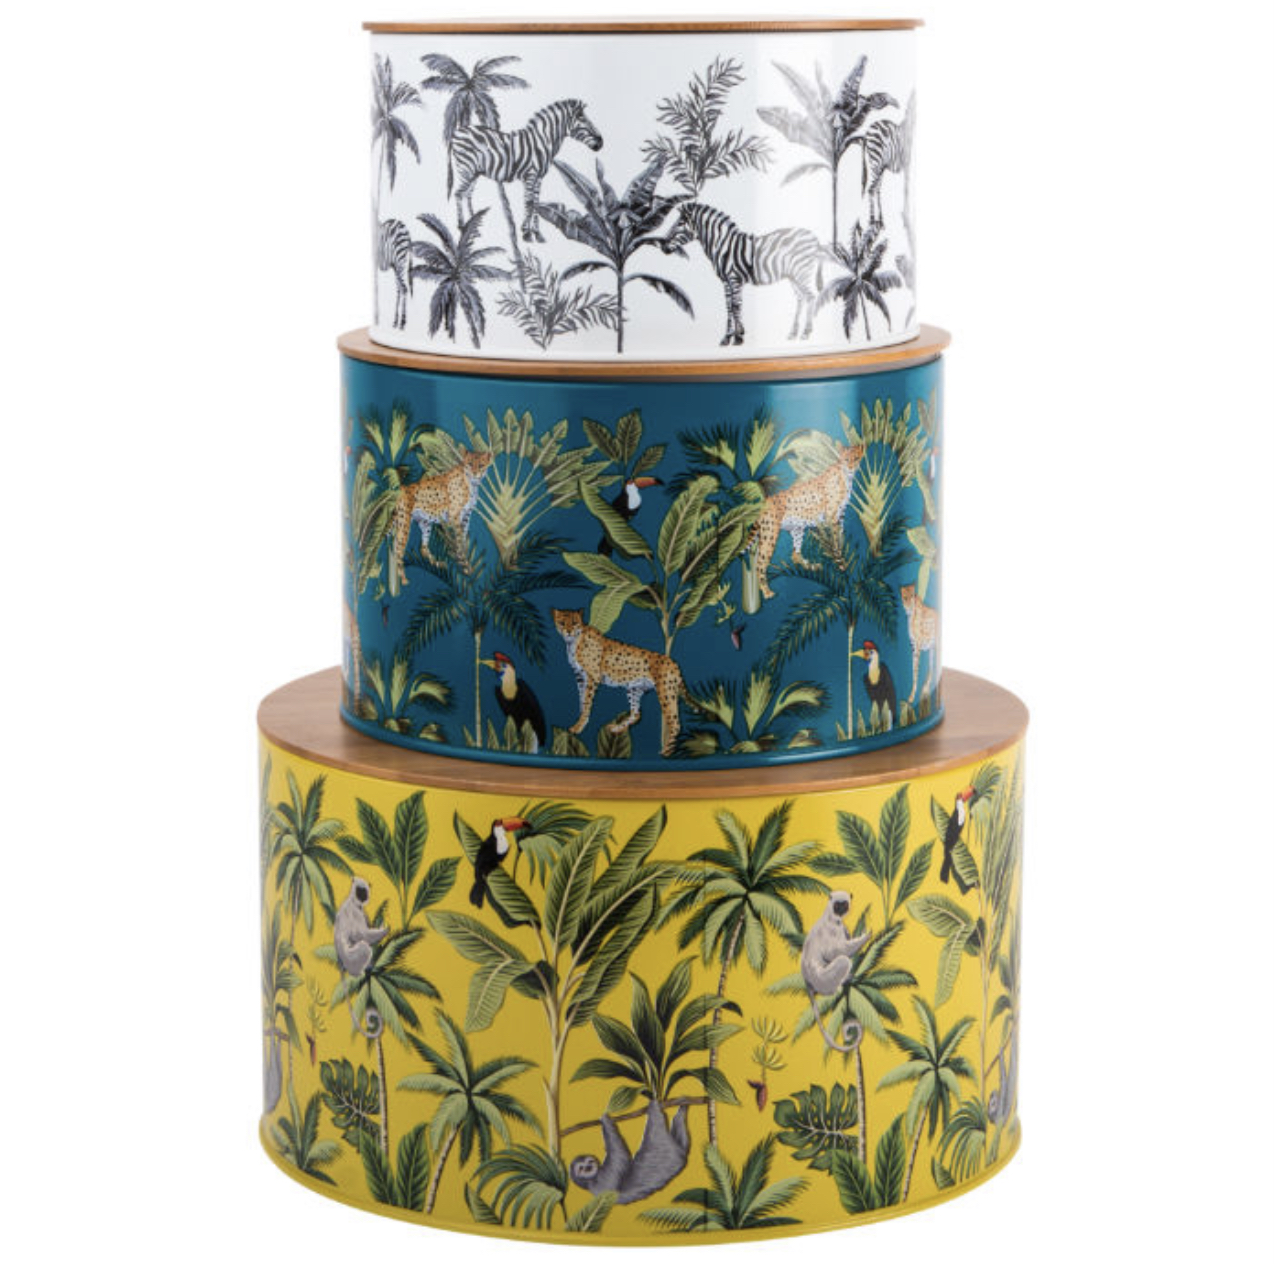 CAKE TIN, MADAGASCAR SET OF 3 NESTING TINS. SLOTH, CHEETAH, ZEBRA JUNGLE DESIGN